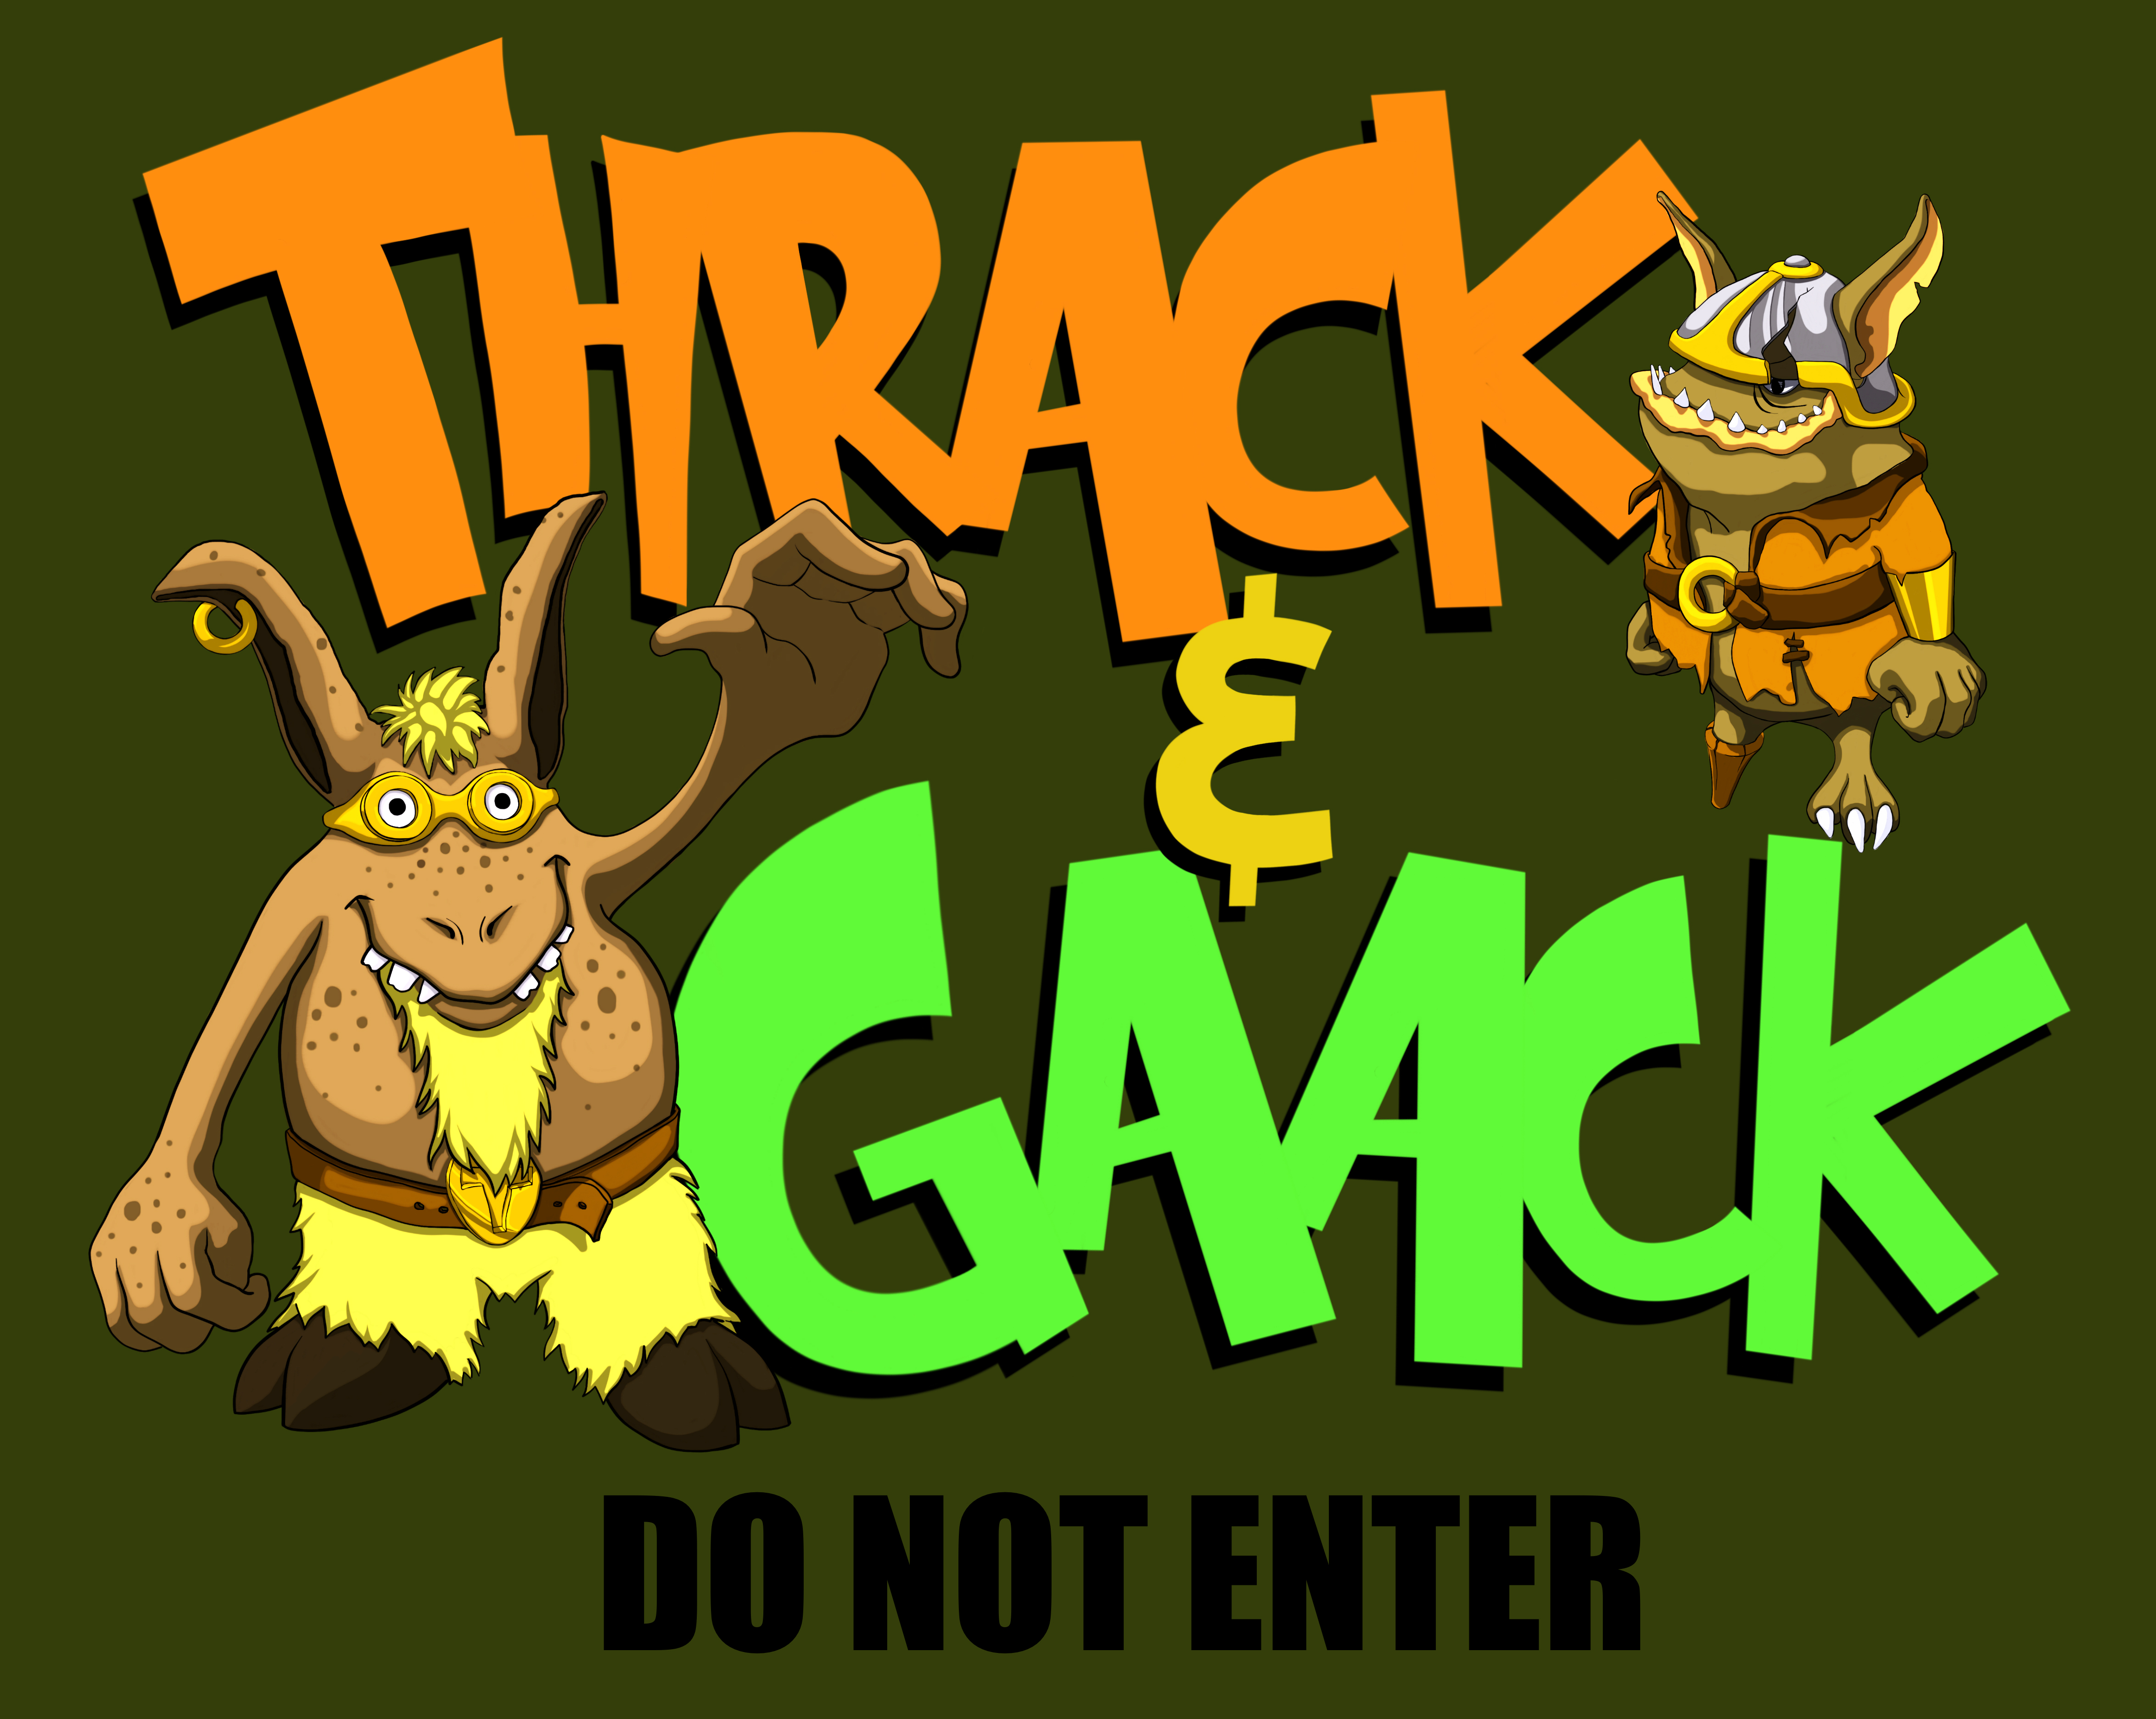 Thrack and Gaack